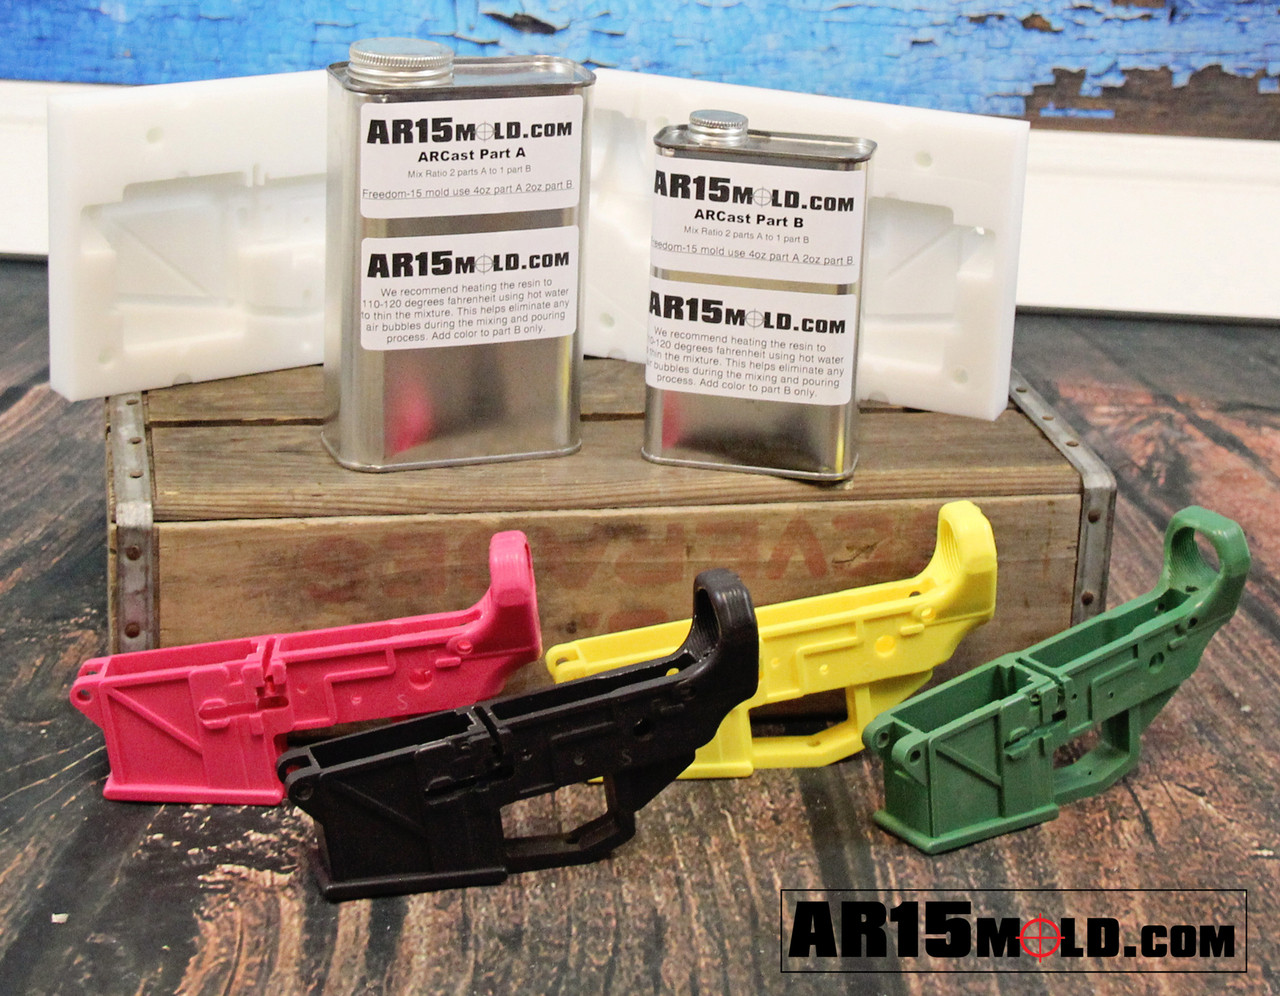 Freedom-15 AR15 100 percent lower receiver mold kit. No Machining Required. Assemble with common AR15 Lower Parts Kits.